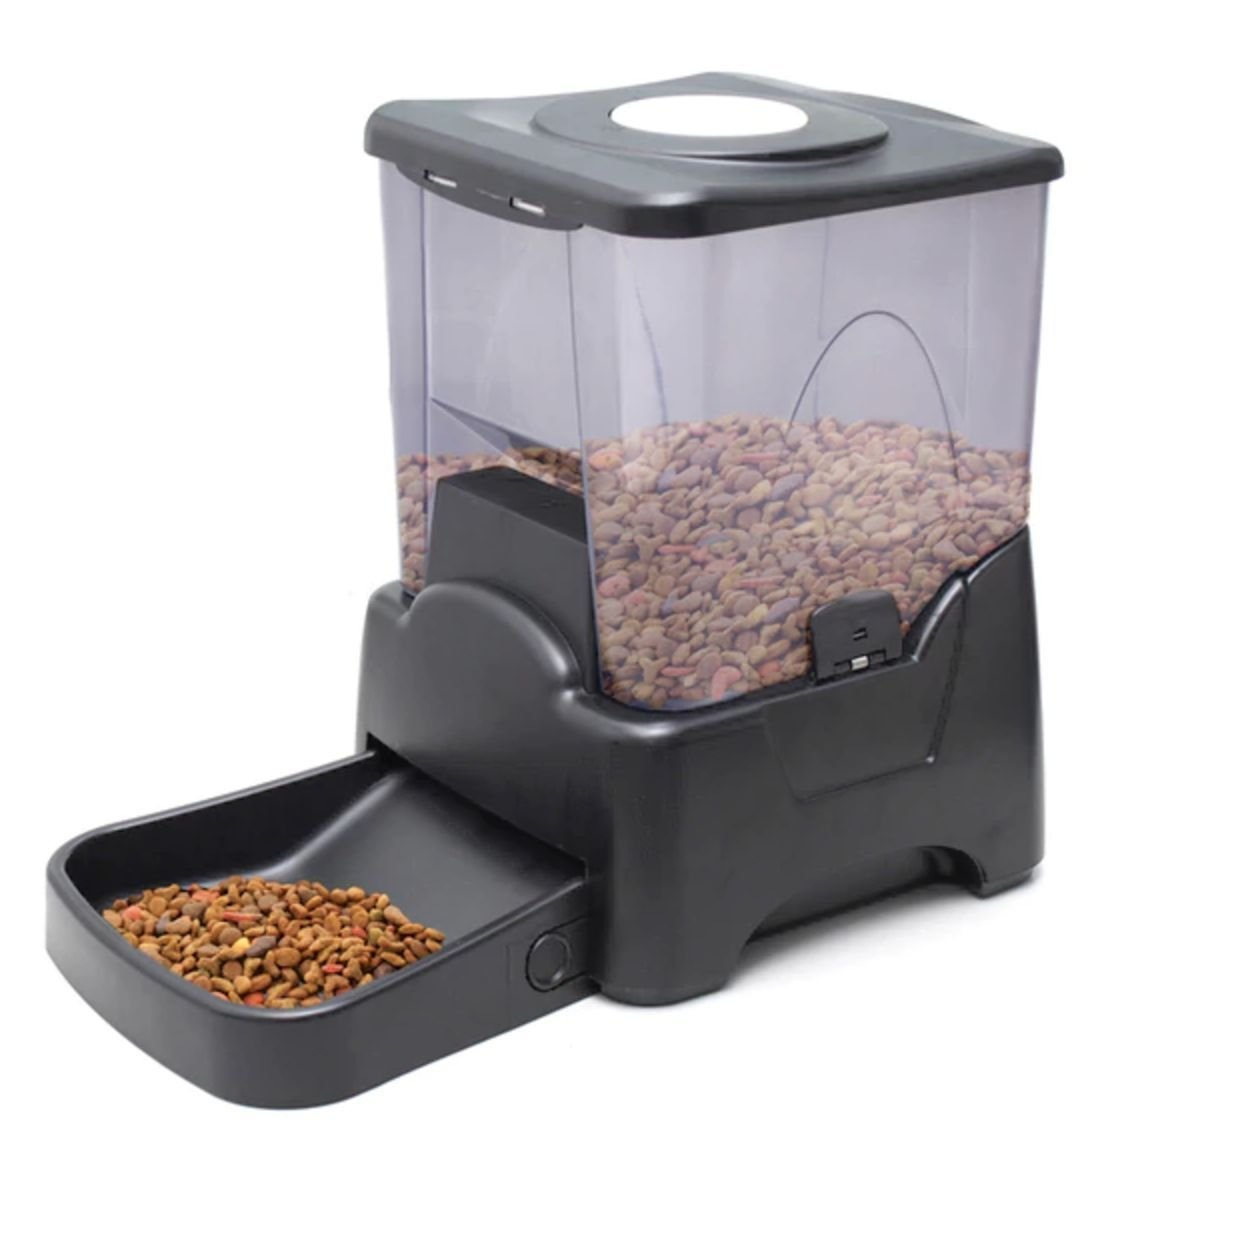 New Automatic Pet Feeder Dog Cat Programmable Animal Food Bowl Auto Dispenser